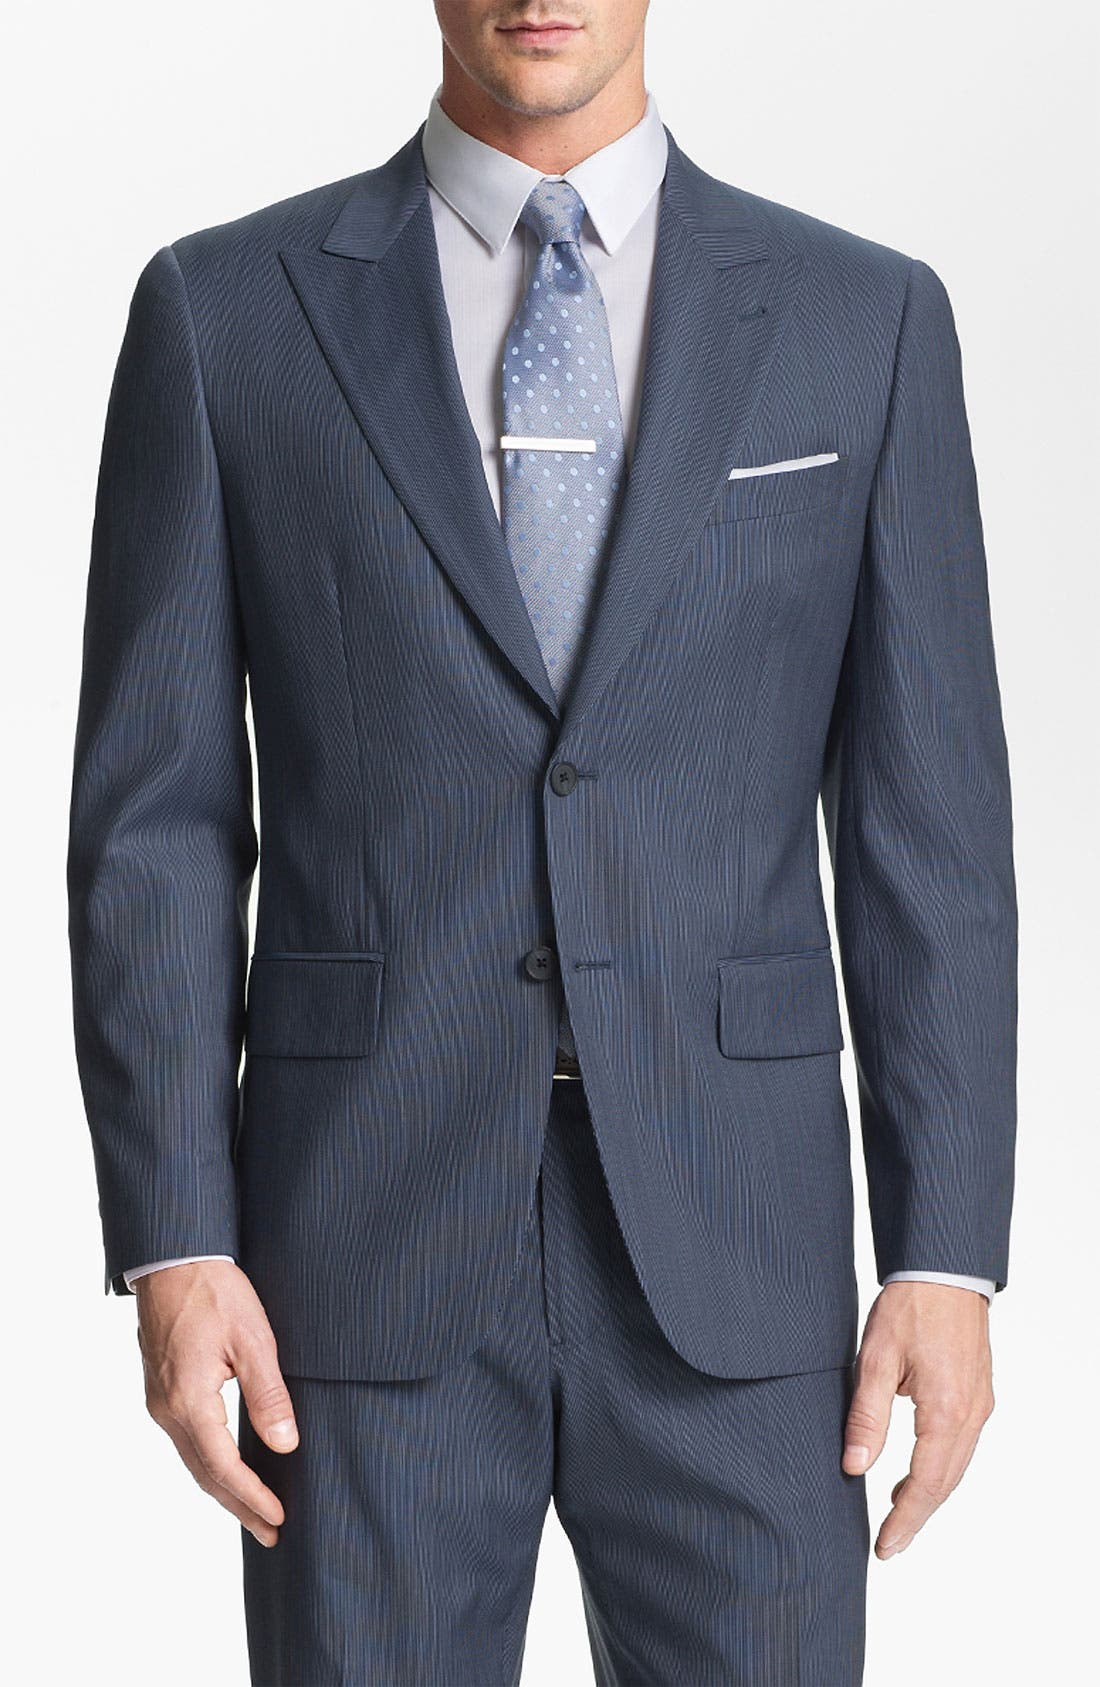 Main Image - Joseph Abboud 'Profile' Trim Fit Stripe Wool Suit